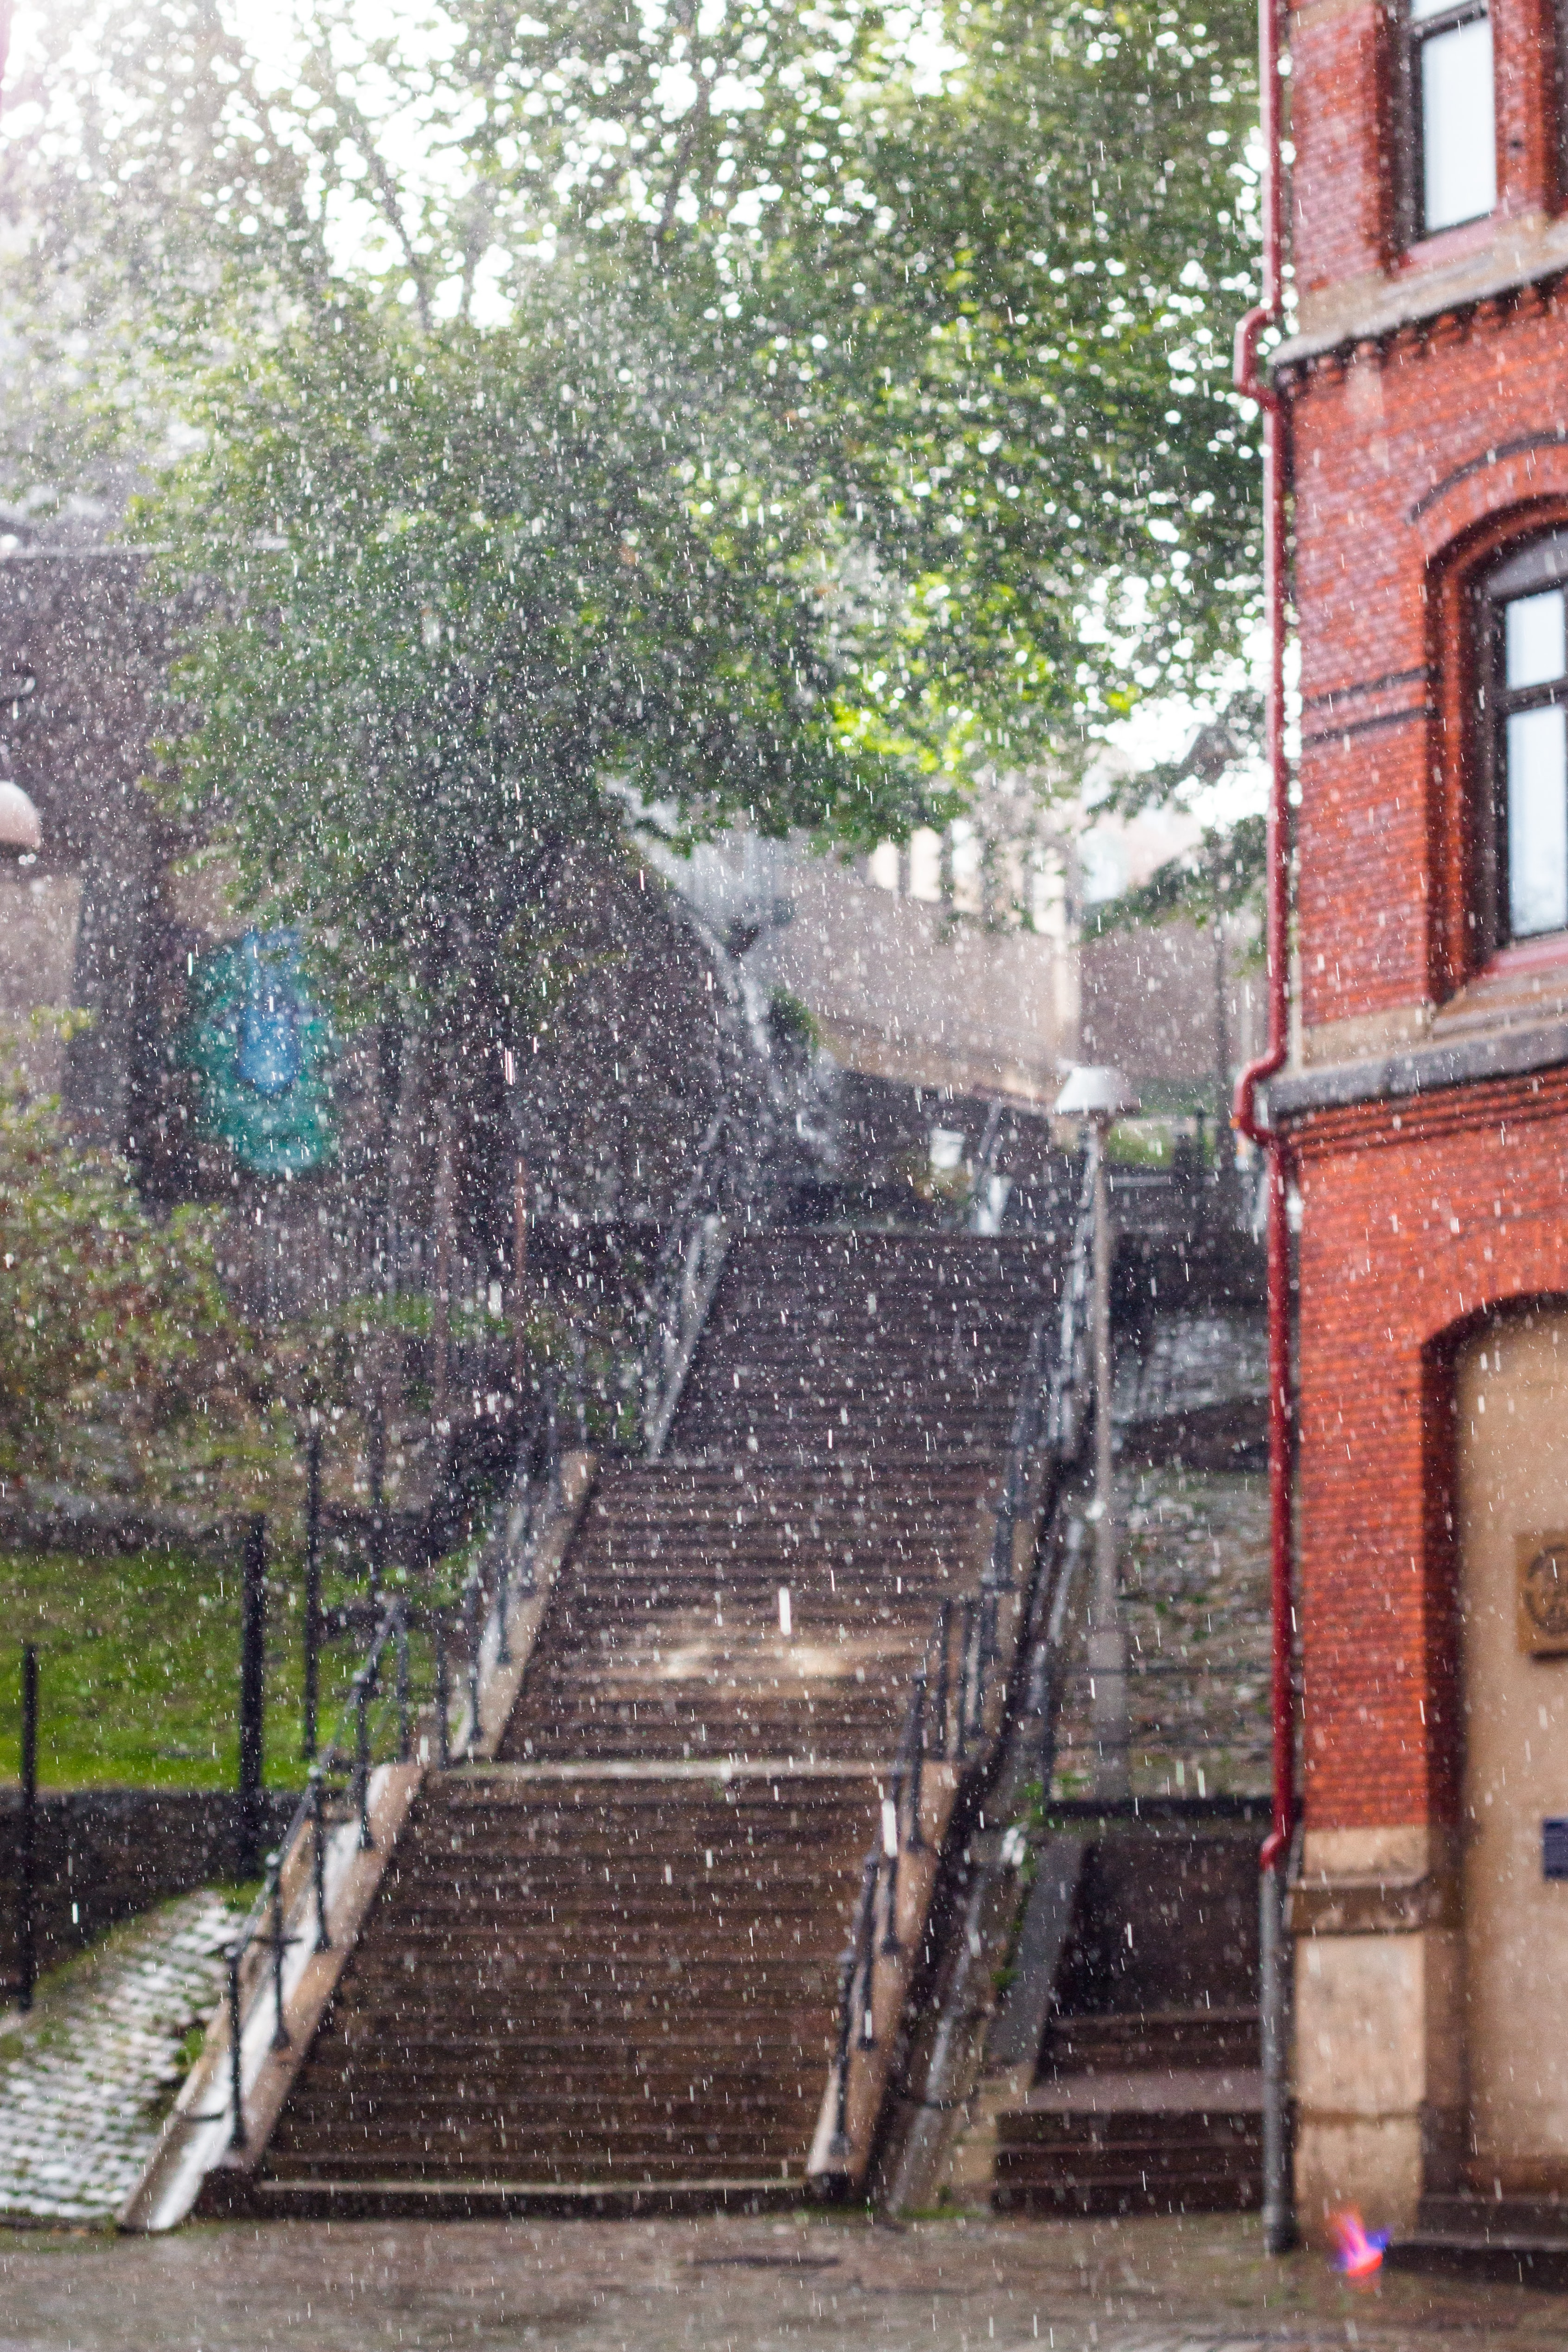 rainfall on building and stairs